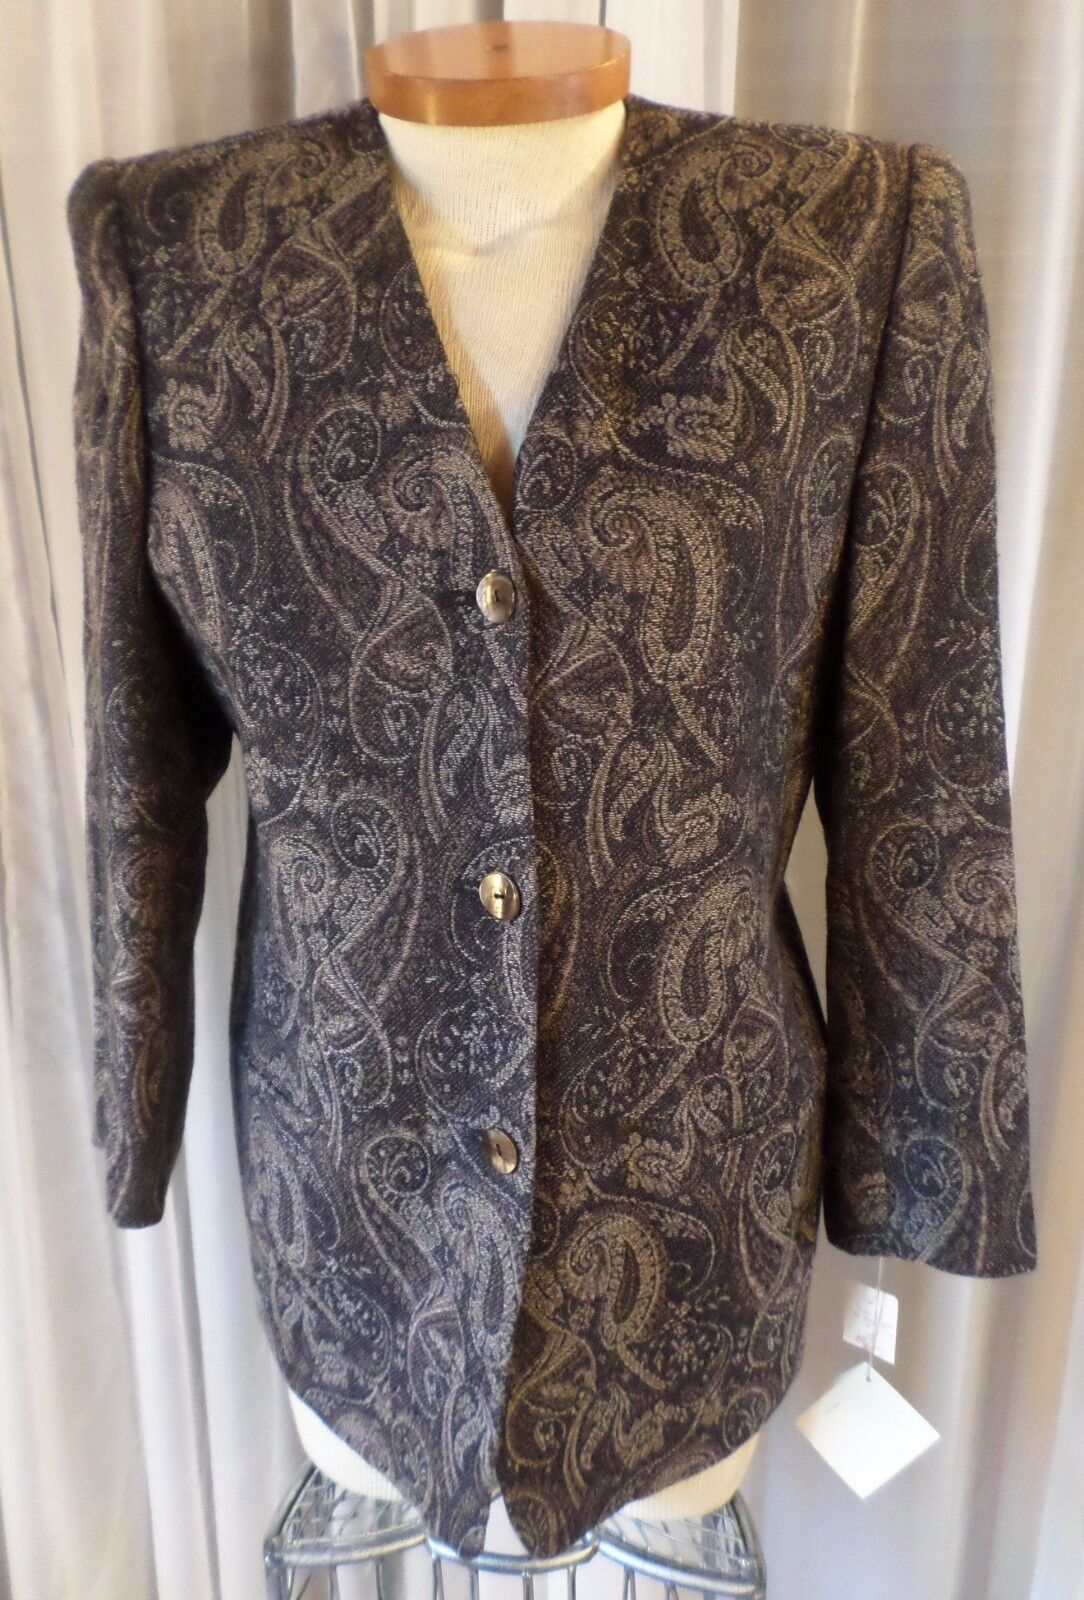 NWT Lady Lord & Taylor Tapestry Blazer Jacket Pure NEW Wool schwarz 10P 10 Petite